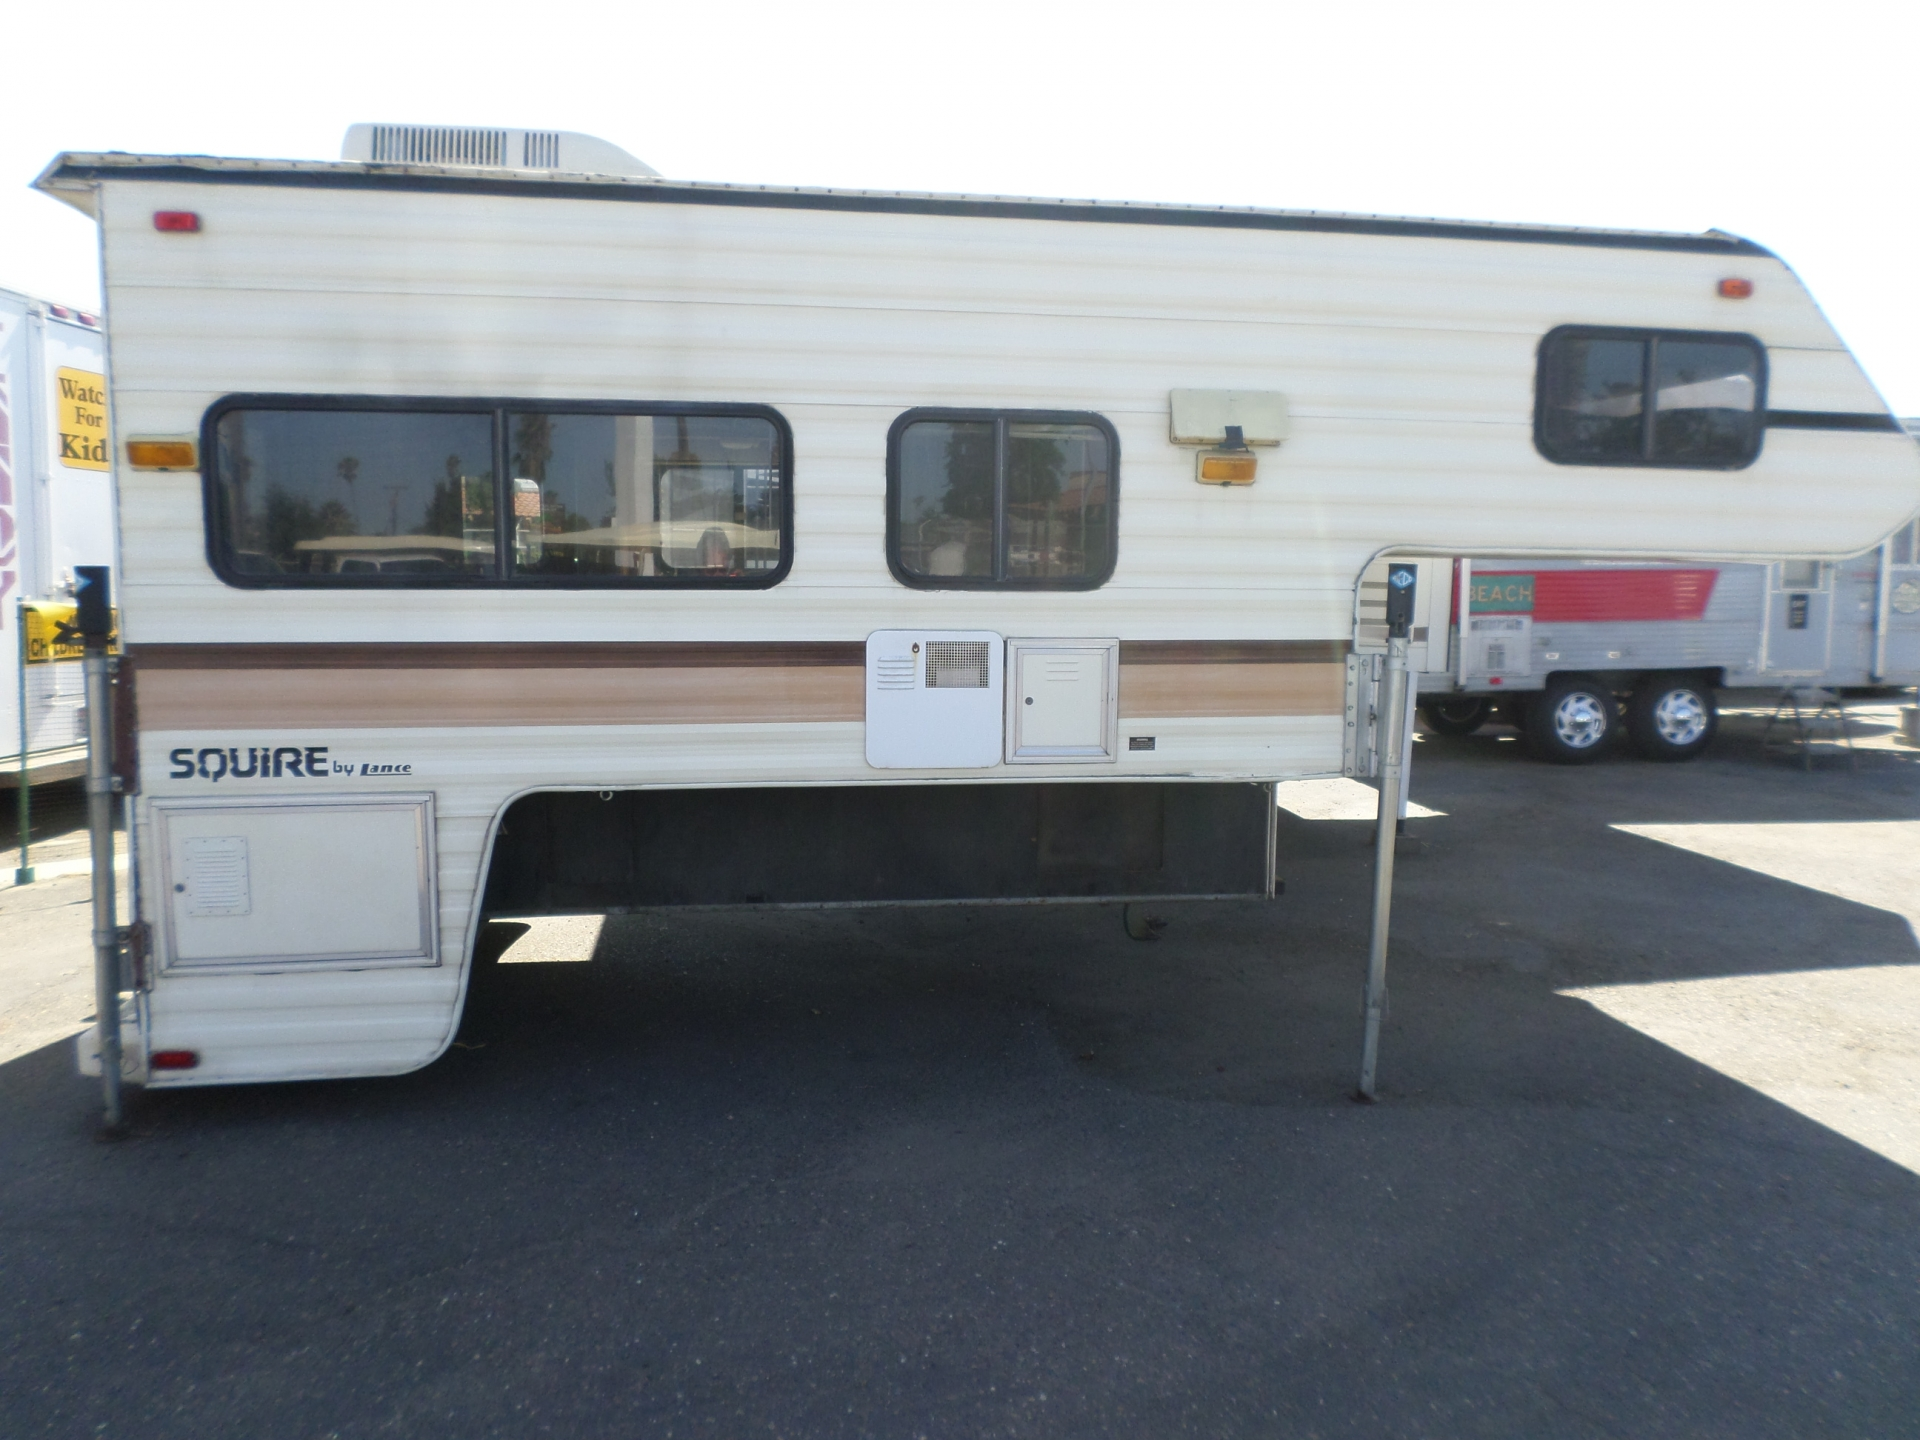 1991 Lance Squire Cabover Camper